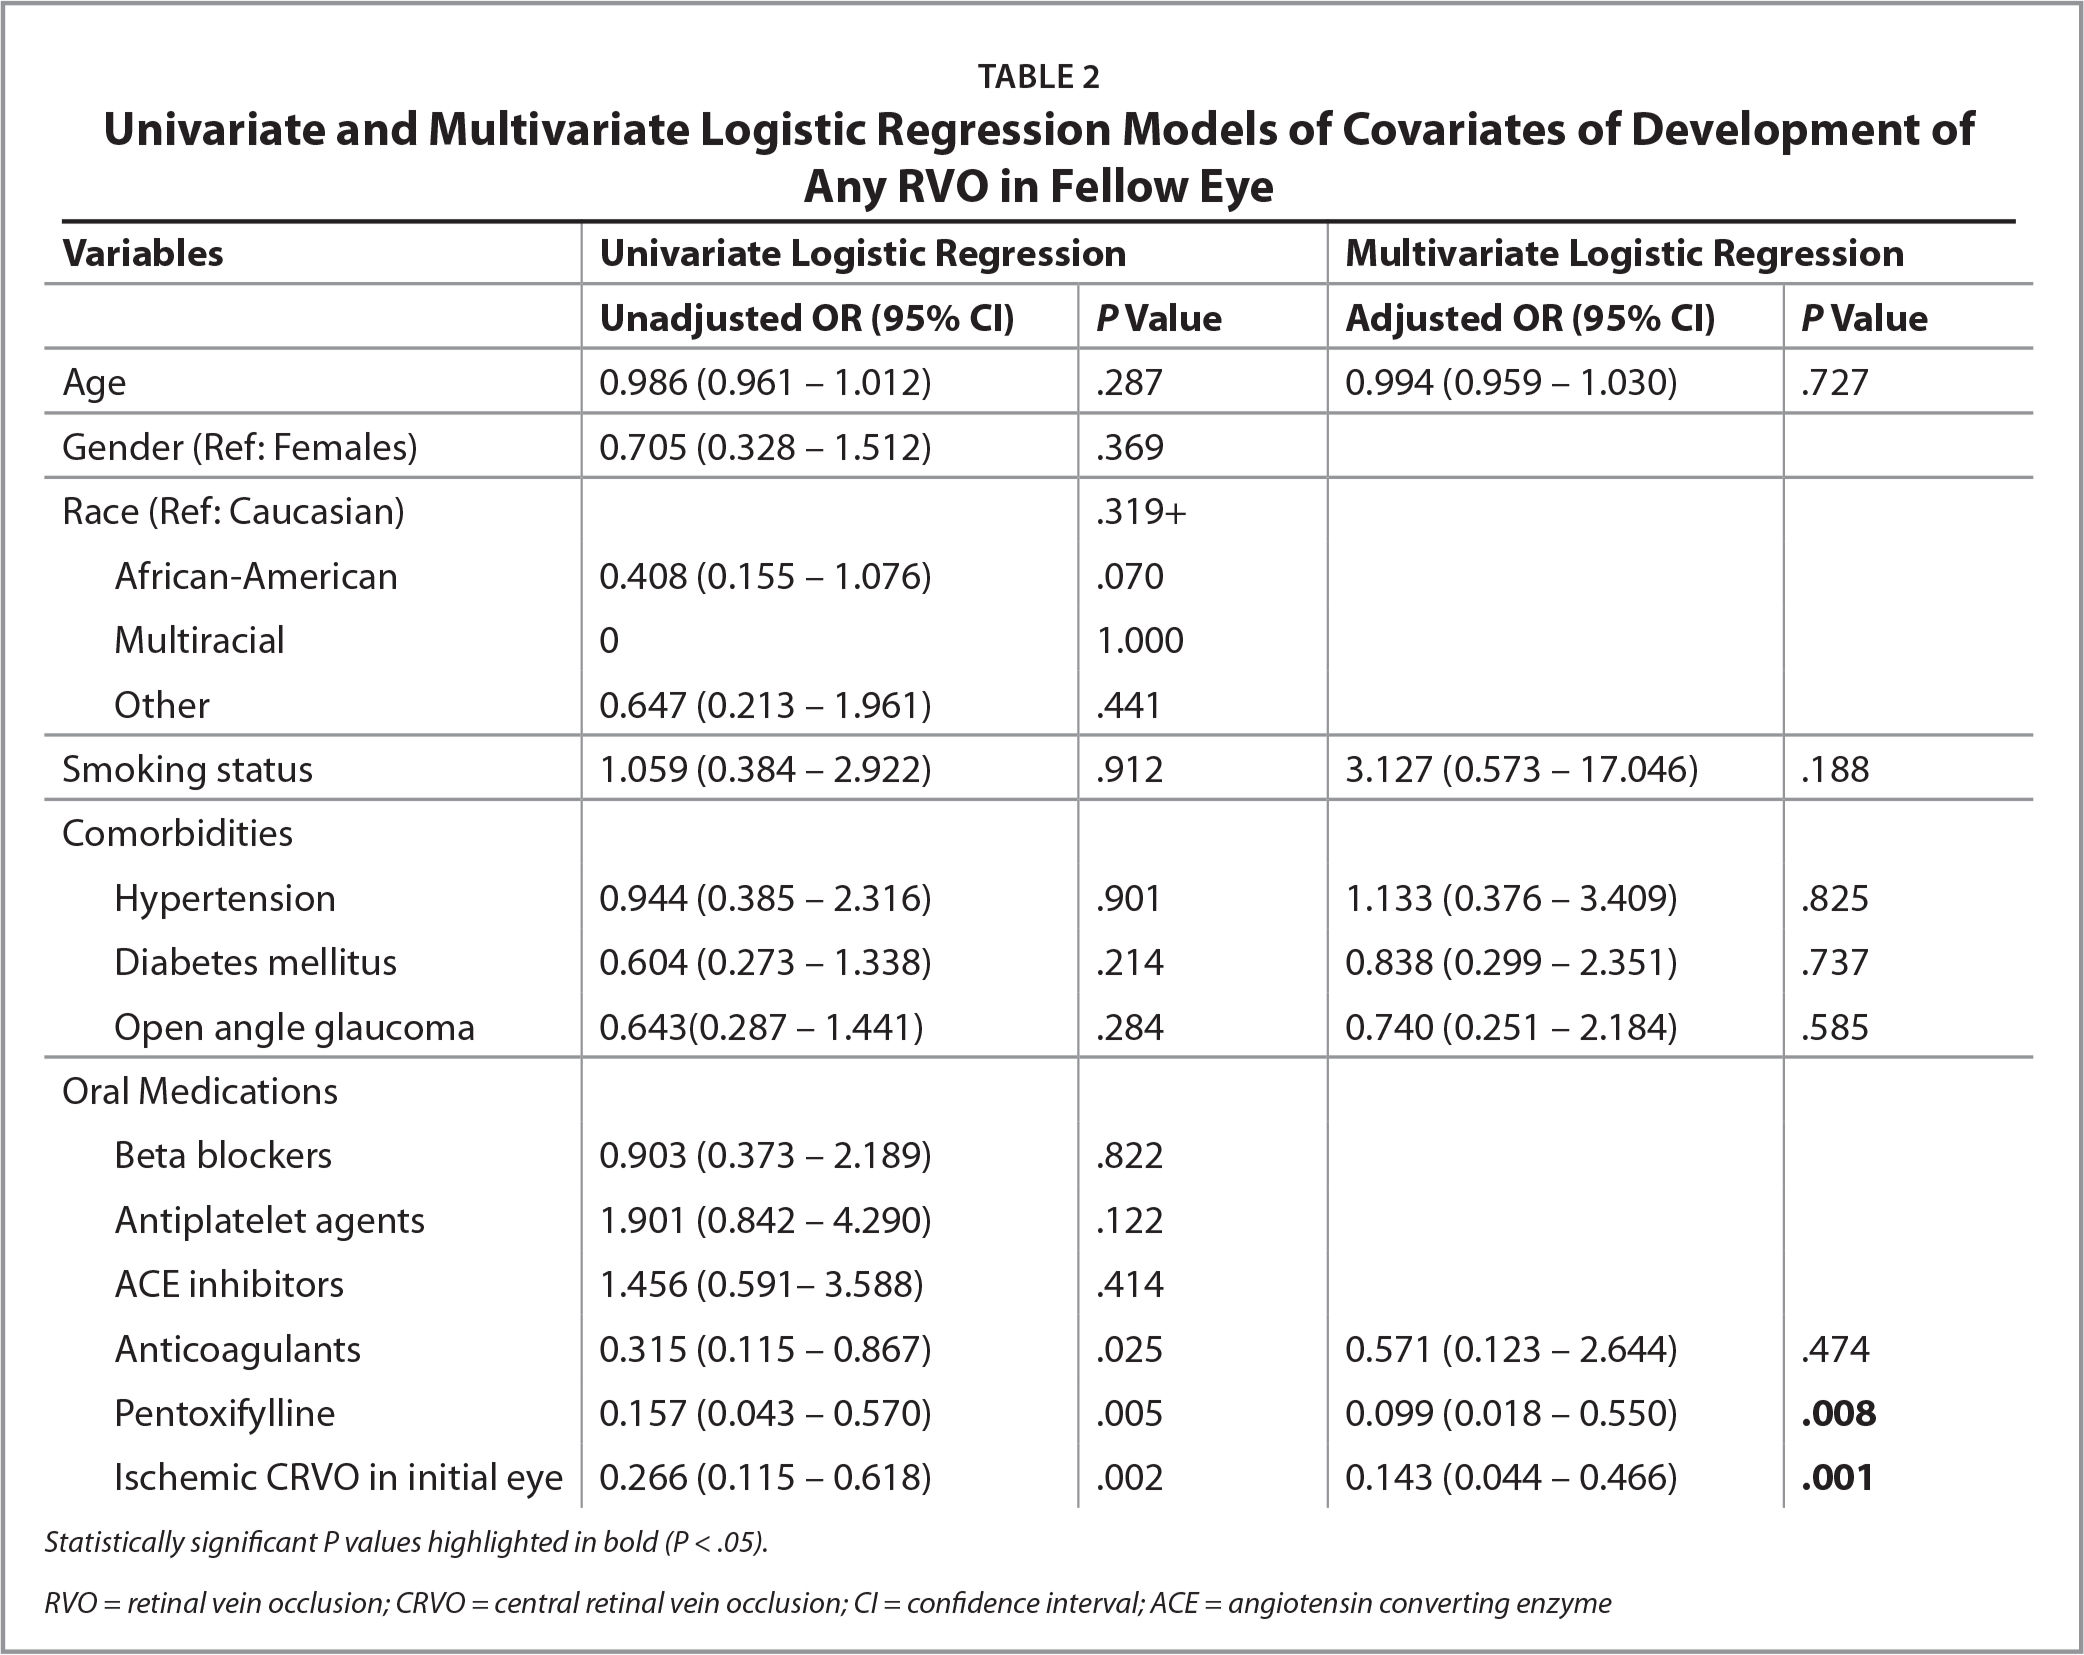 Univariate and Multivariate Logistic Regression Models of Covariates of Development of Any RVO in Fellow Eye